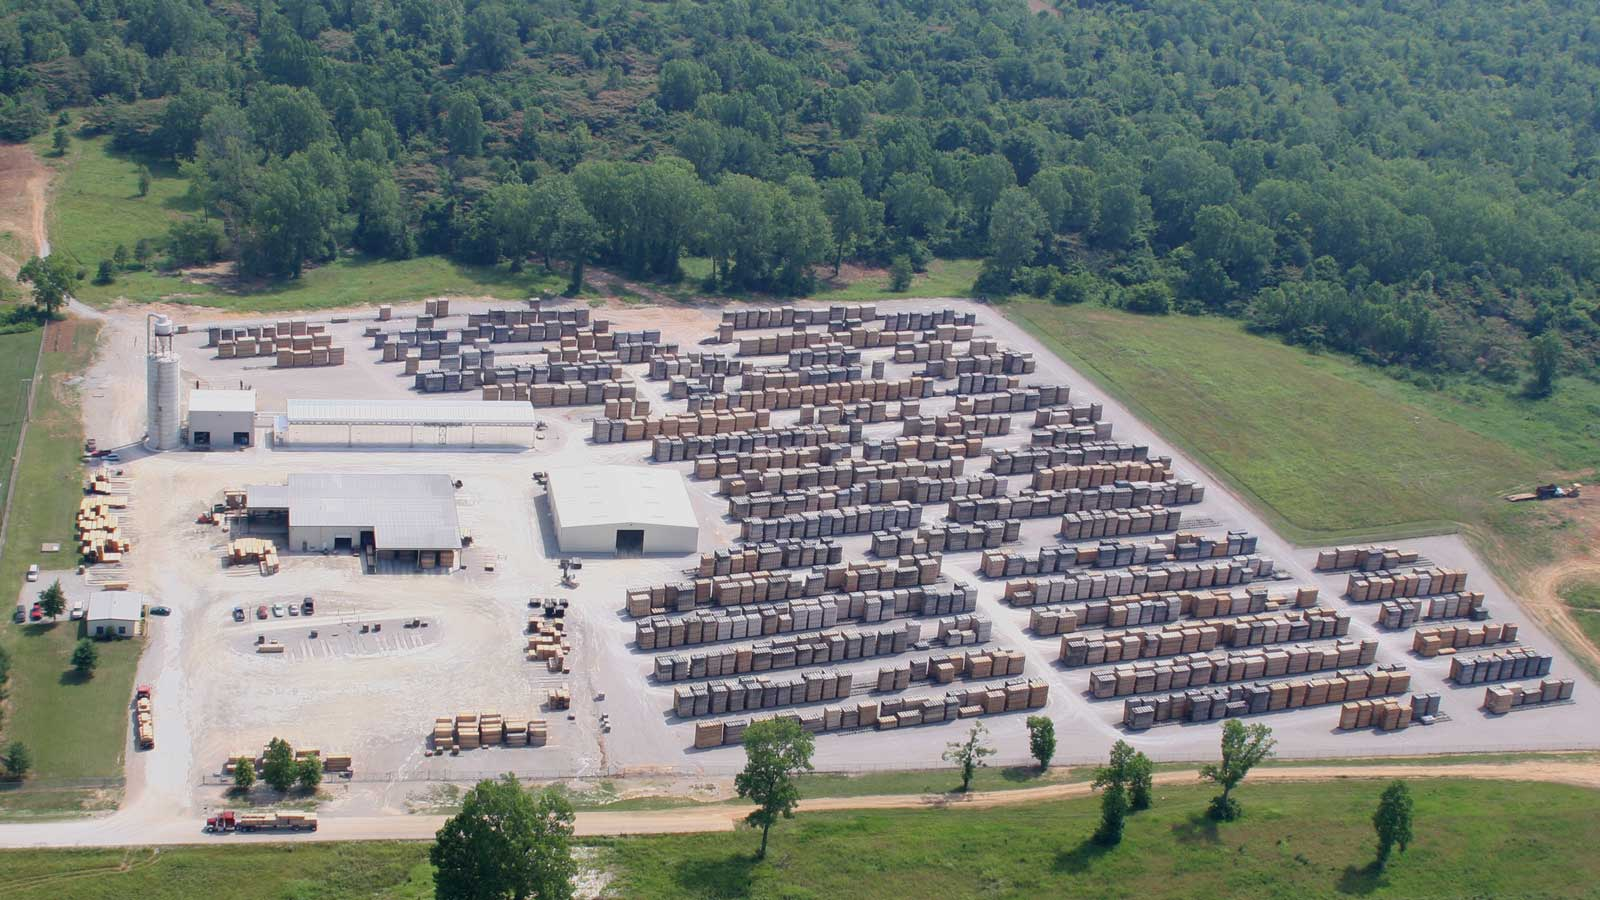 Aerial view of the Tennessee Ferche lumber yards